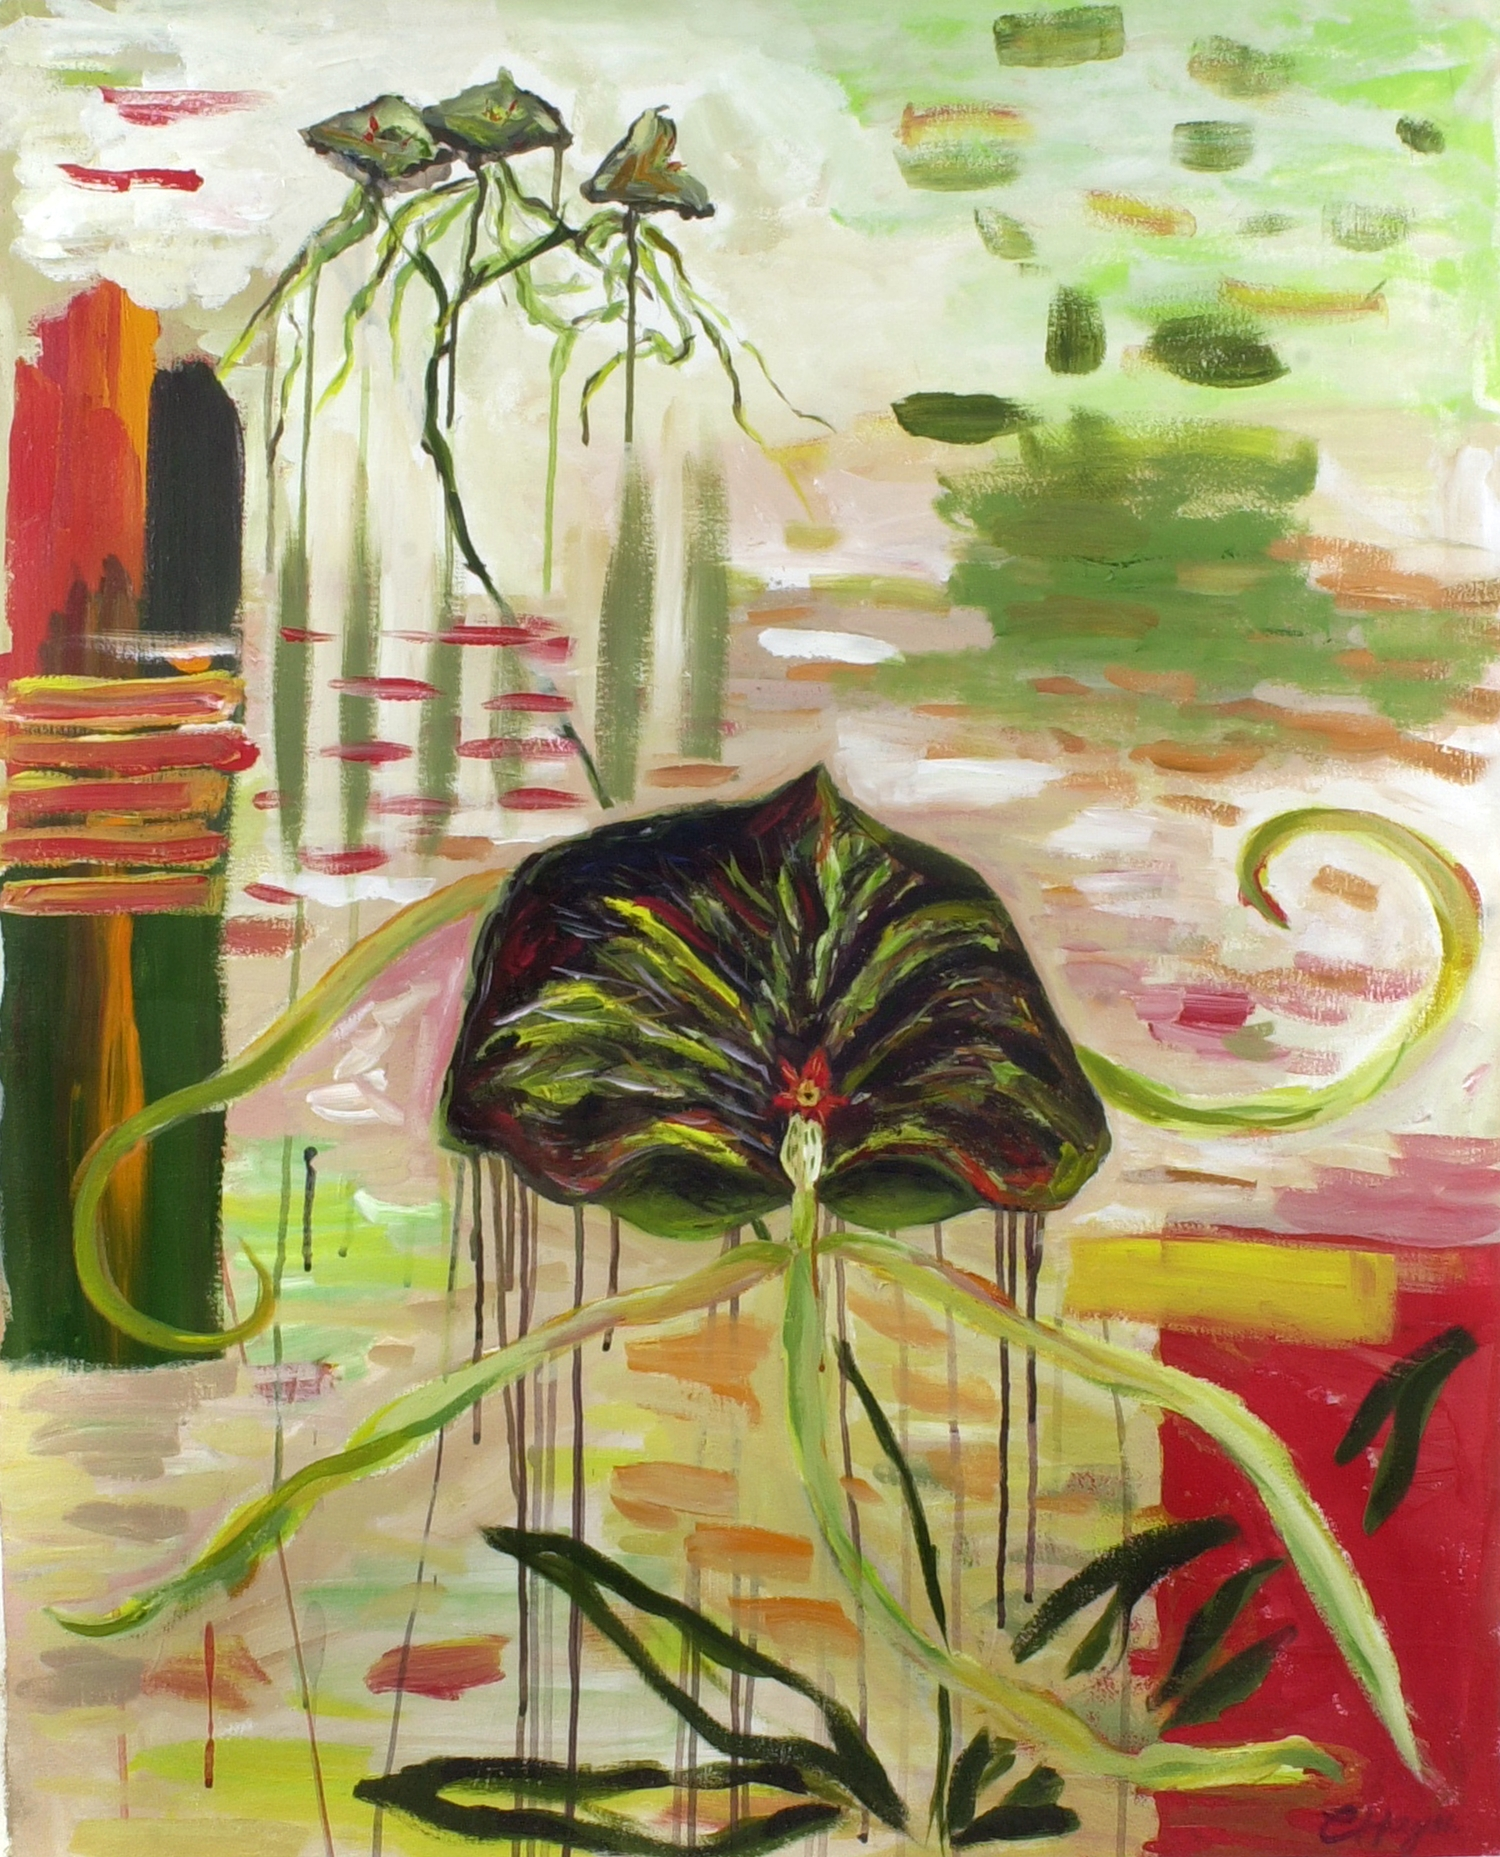 ORCHID iii   acrylic on watercolour paper, 60x85cm